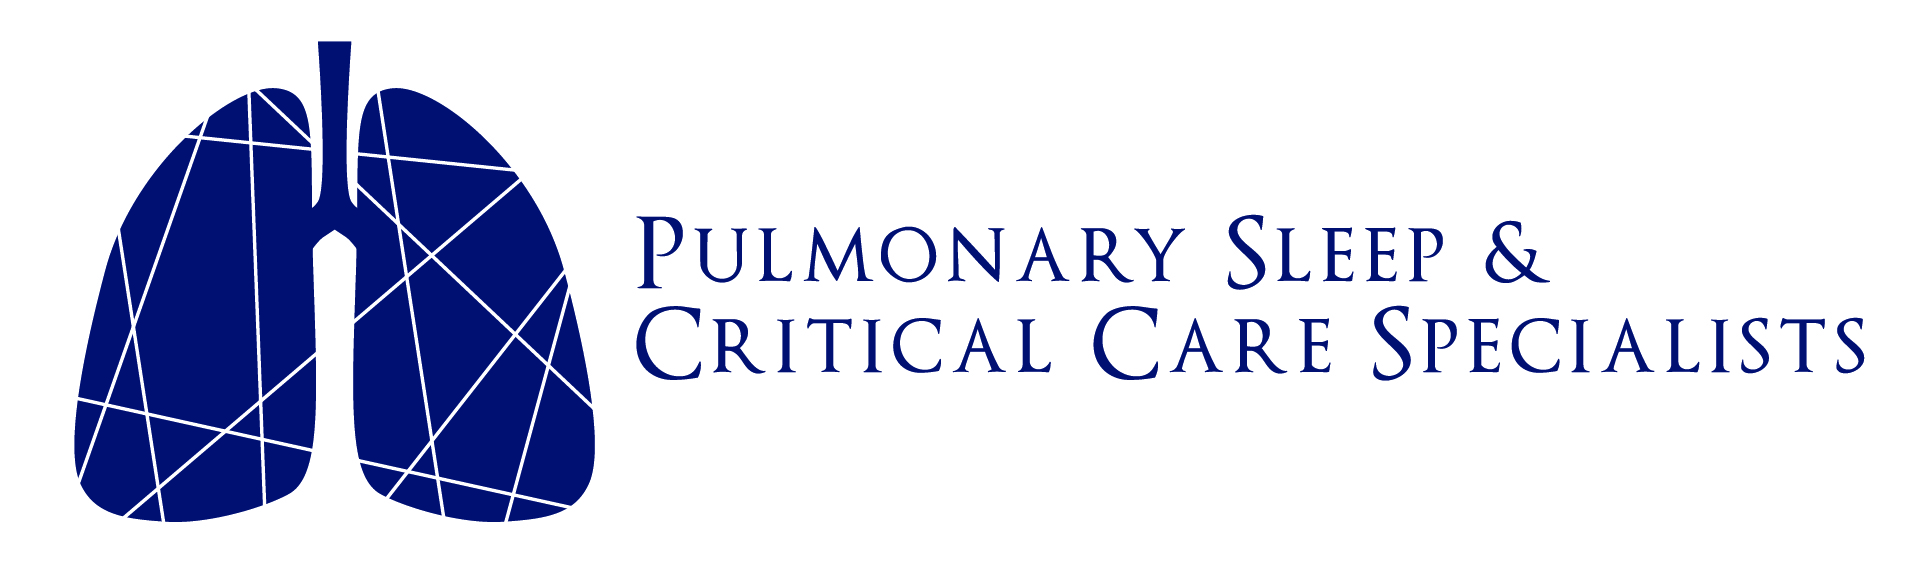 Pulmonary Sleep and Critical Care Specialists